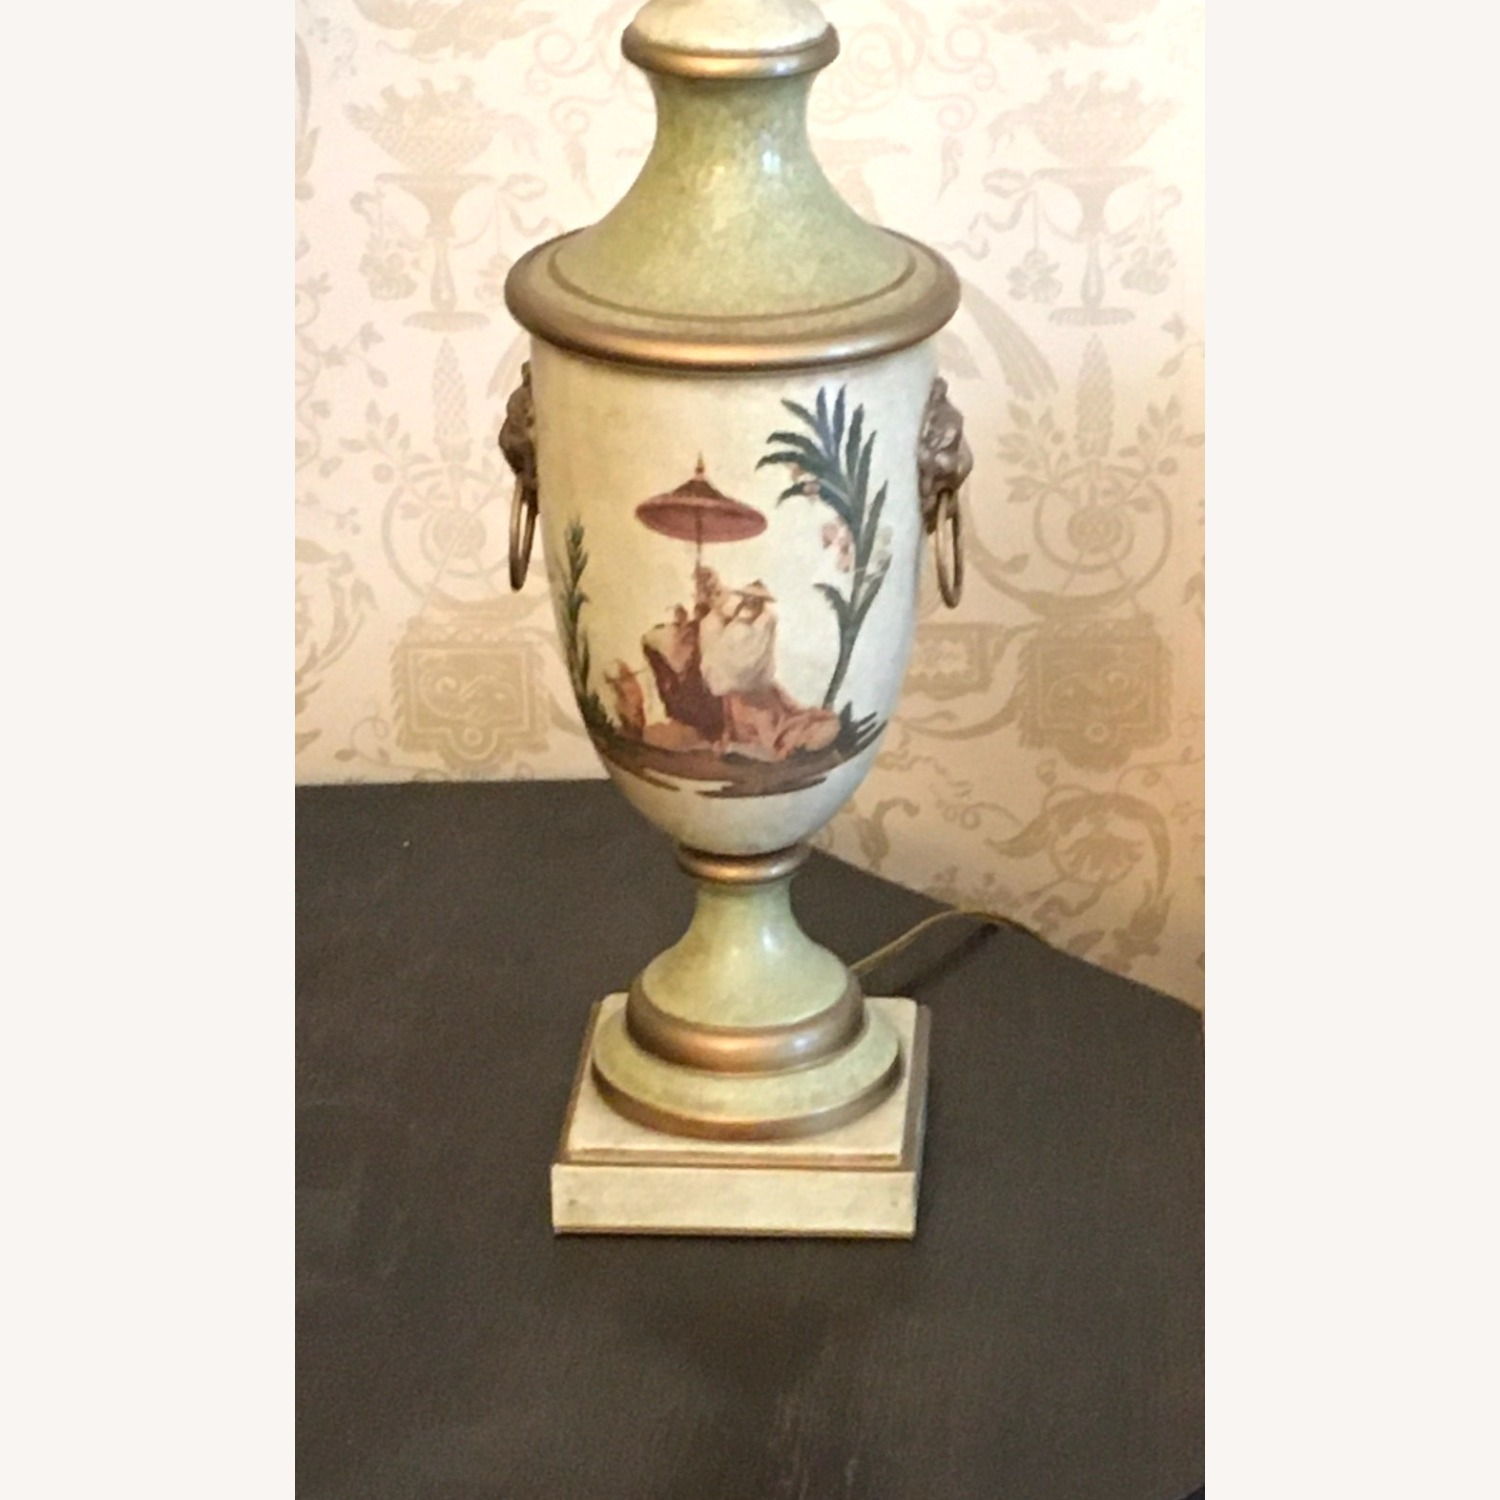 Pair of Hand Painted Asian Theme Toleware Lamps - image-4